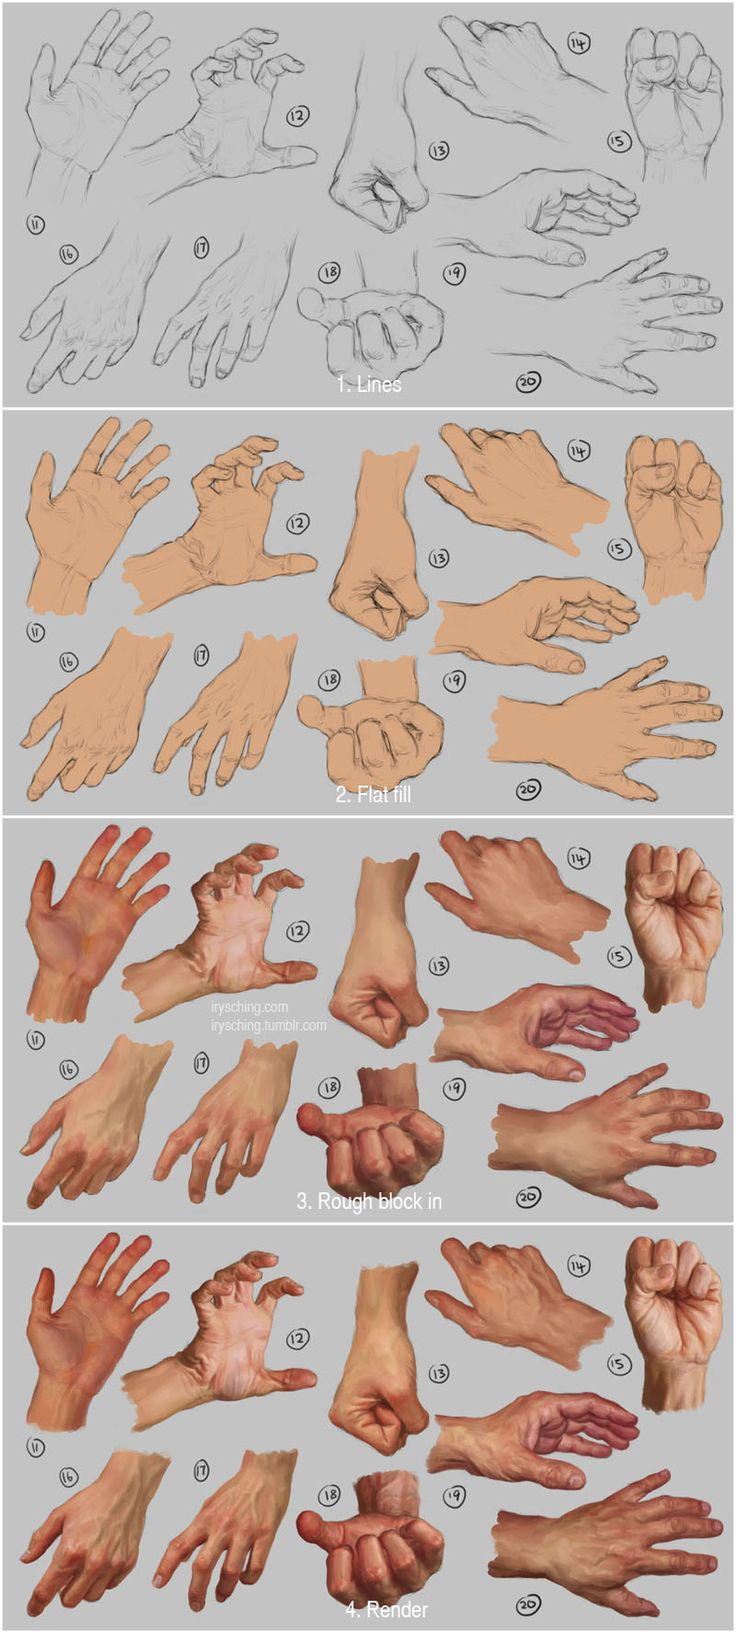 Hand study 2 - Steps by irysching.deviantart.com on @deviantART ✤ || CHARACTER DESIGN REFERENCES | キャラクターデザイン | çizgi film • Find more at https://www.facebook.com/CharacterDesignReferences & http://www.pinterest.com/characterdesigh if you're looking for.